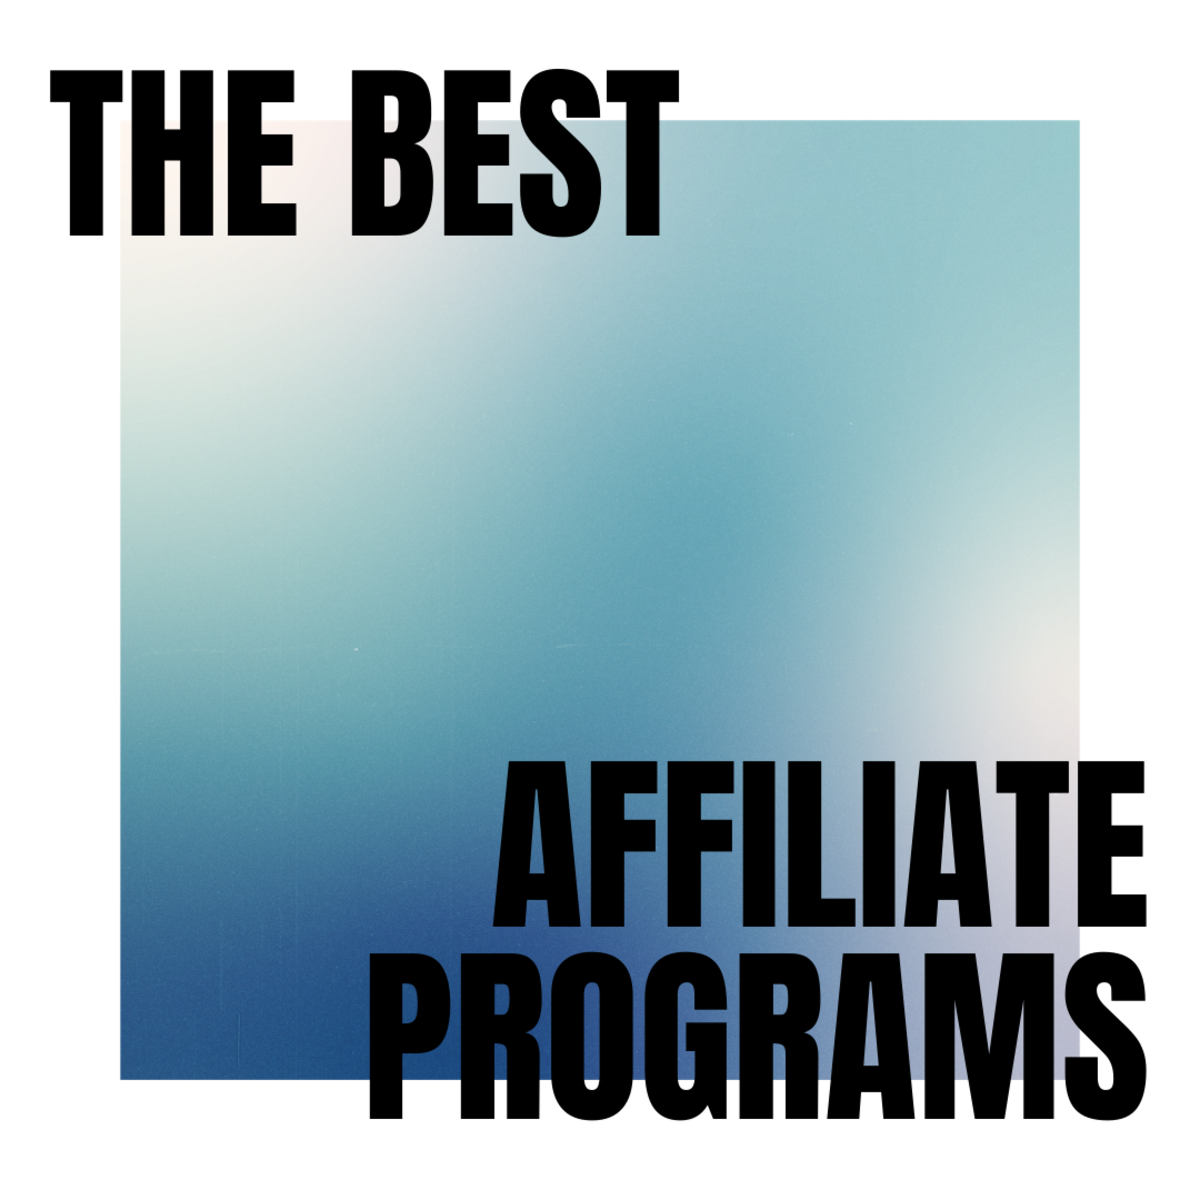 The best affiliate programs for your needs!